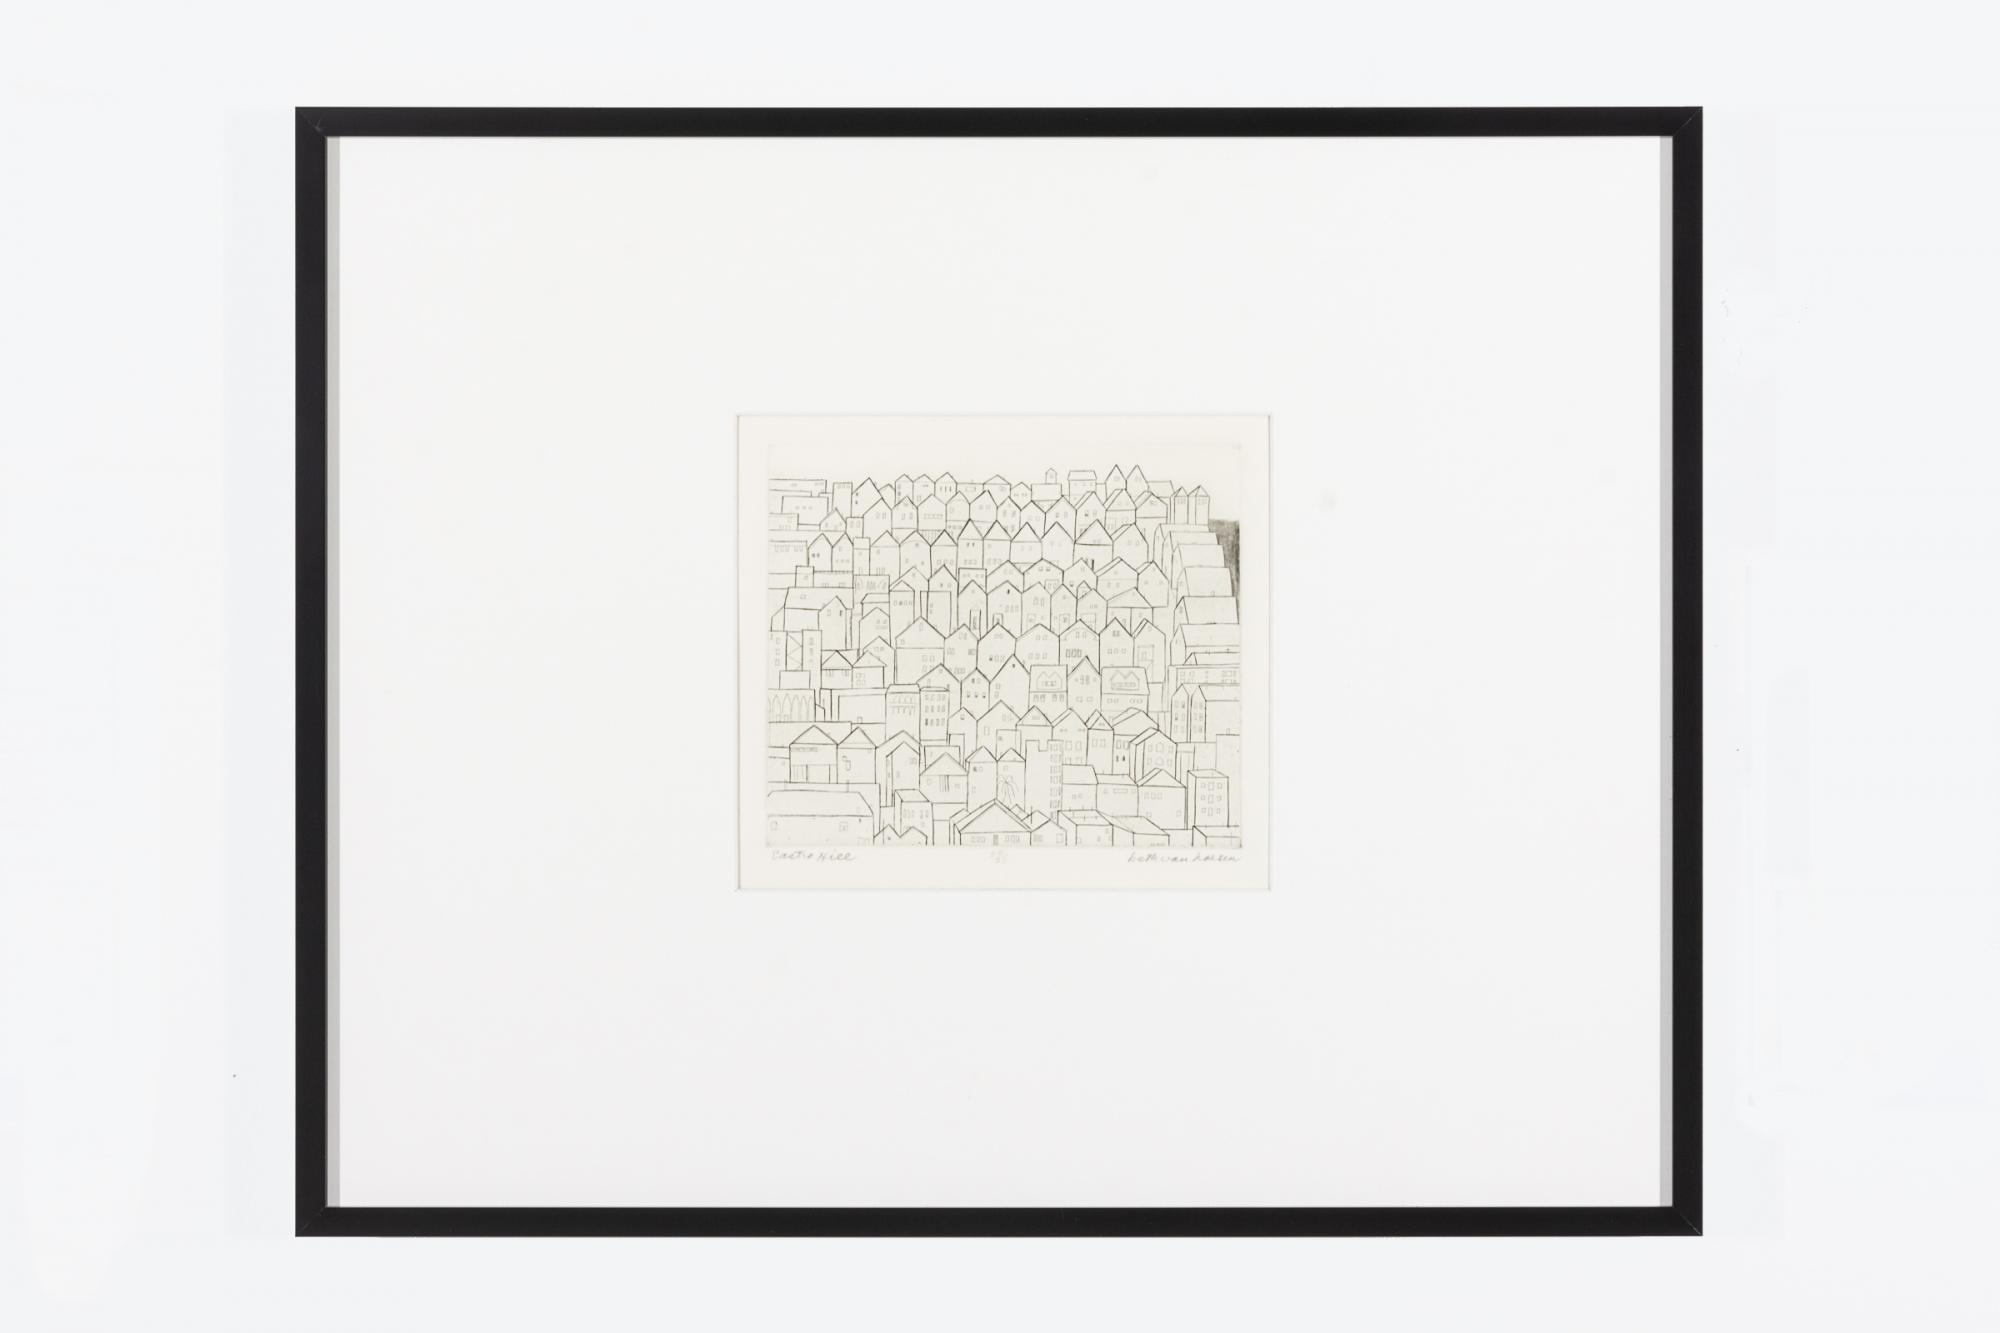 Beth Van Hoesen, United States, 1926-2010. Castro Hill, 1960. Engraving and etching with roulette on paper, edition 24/25. Gift of the E. Mark Adams and Beth Van Hoesen Adams Trust. 2012.6.3